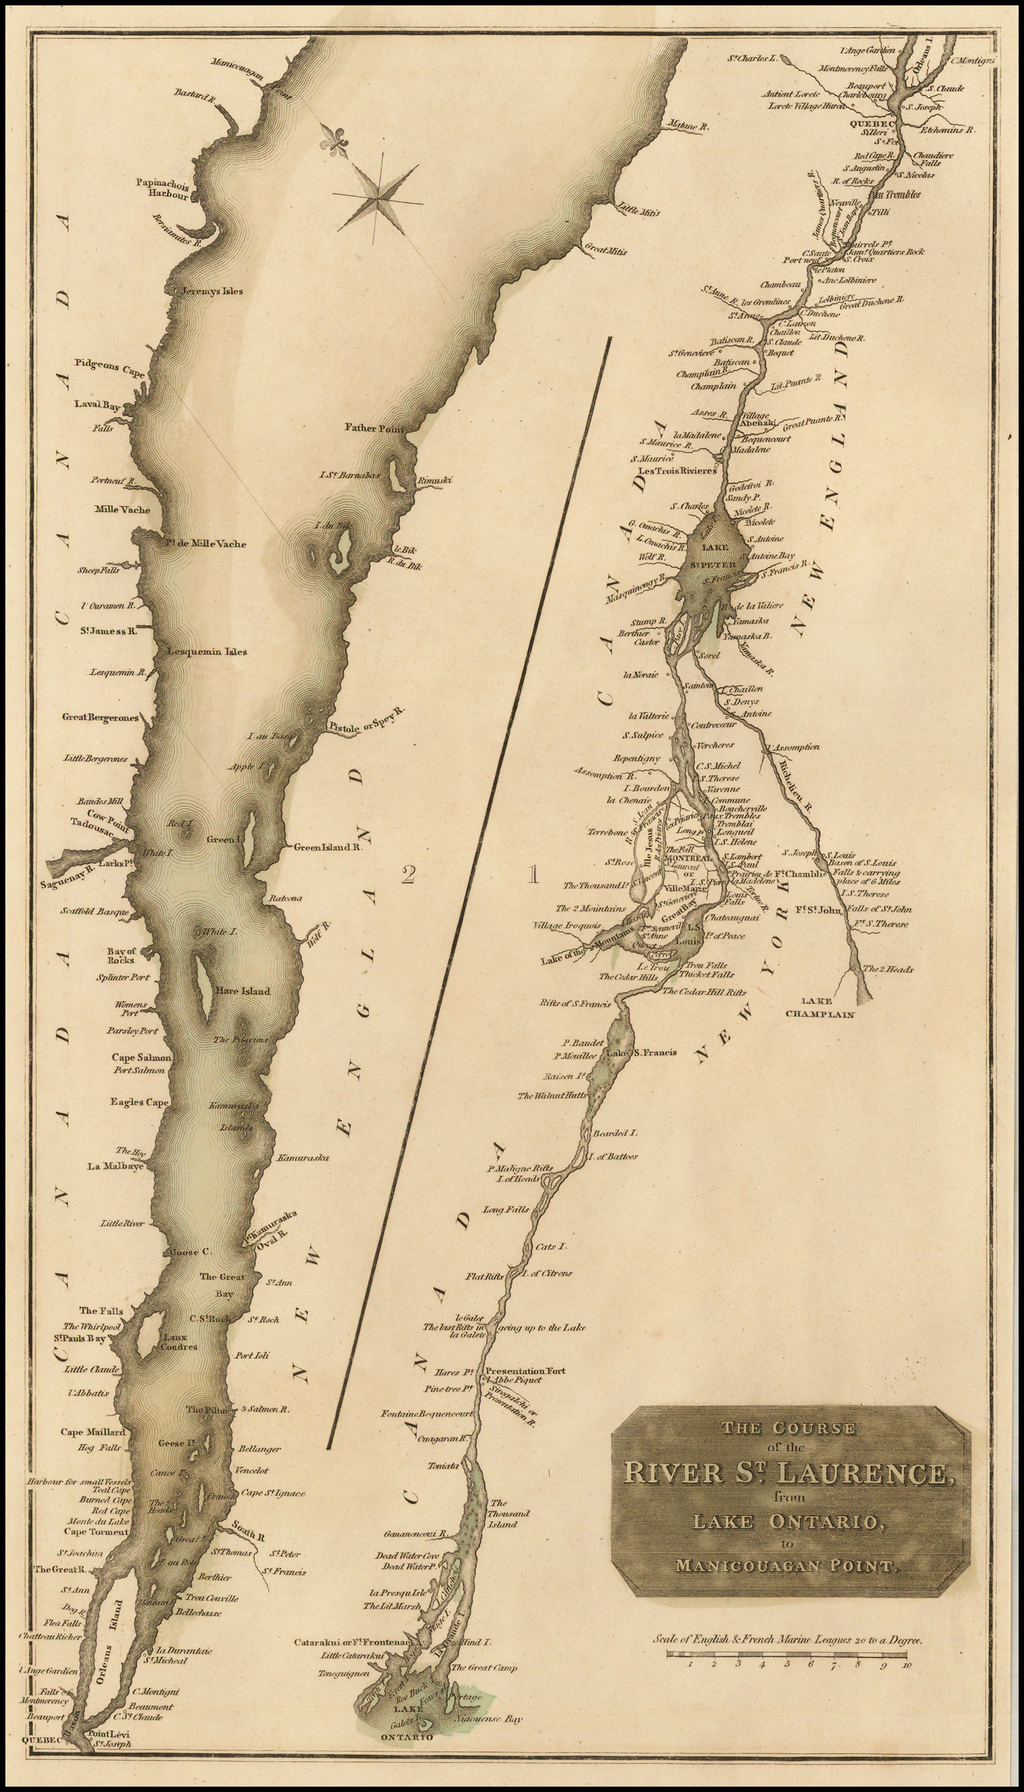 The Course of the River St. Laurence from Lake Ontario to Manicouagan Point By John Thomson